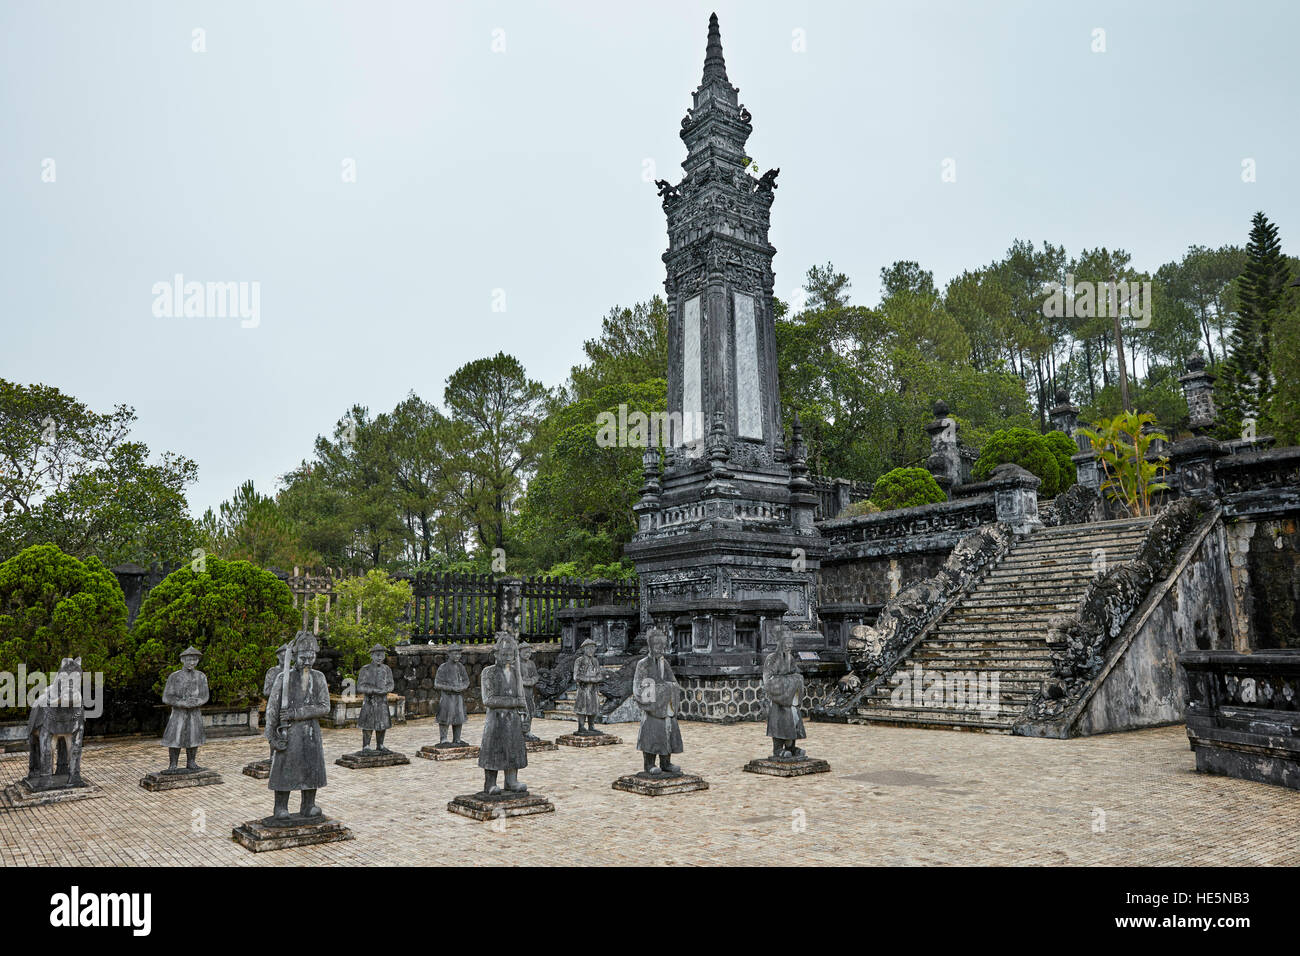 Salutation Court at the Tomb of Khai Dinh (Ung Tomb). Hue, Vietnam. - Stock Image